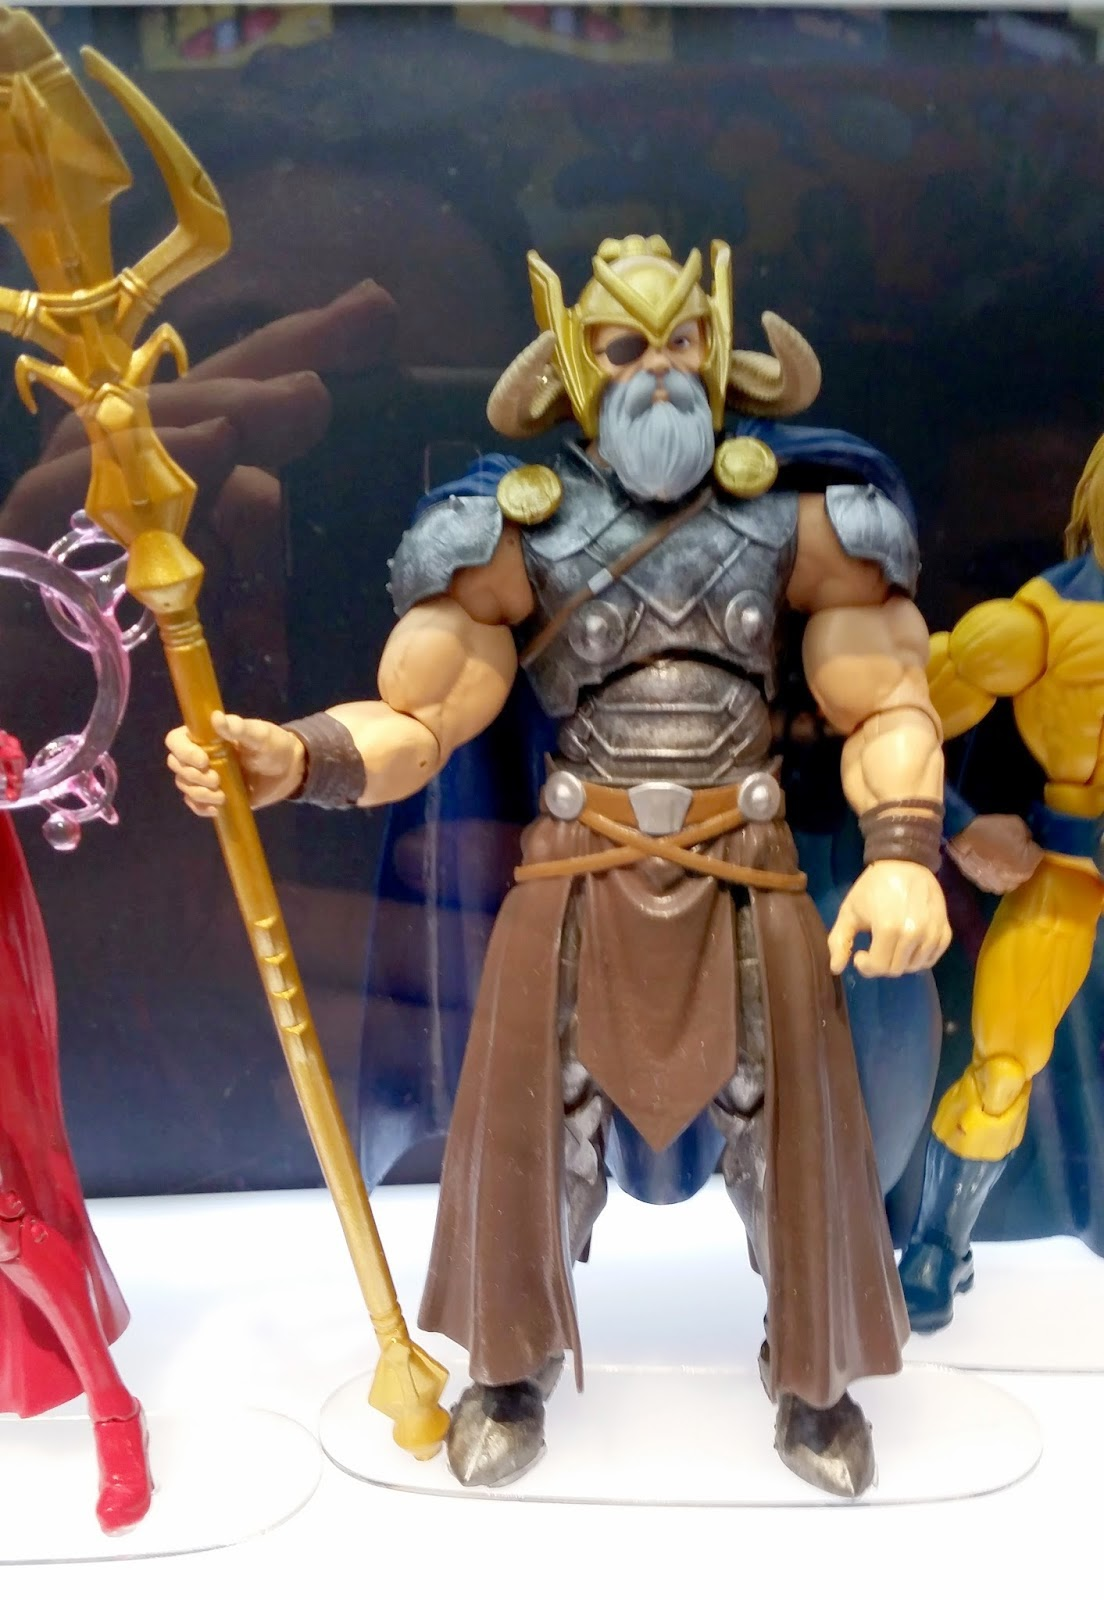 Hasbro - Marvel Legends Avengers Infinite - Odin Build A Figure